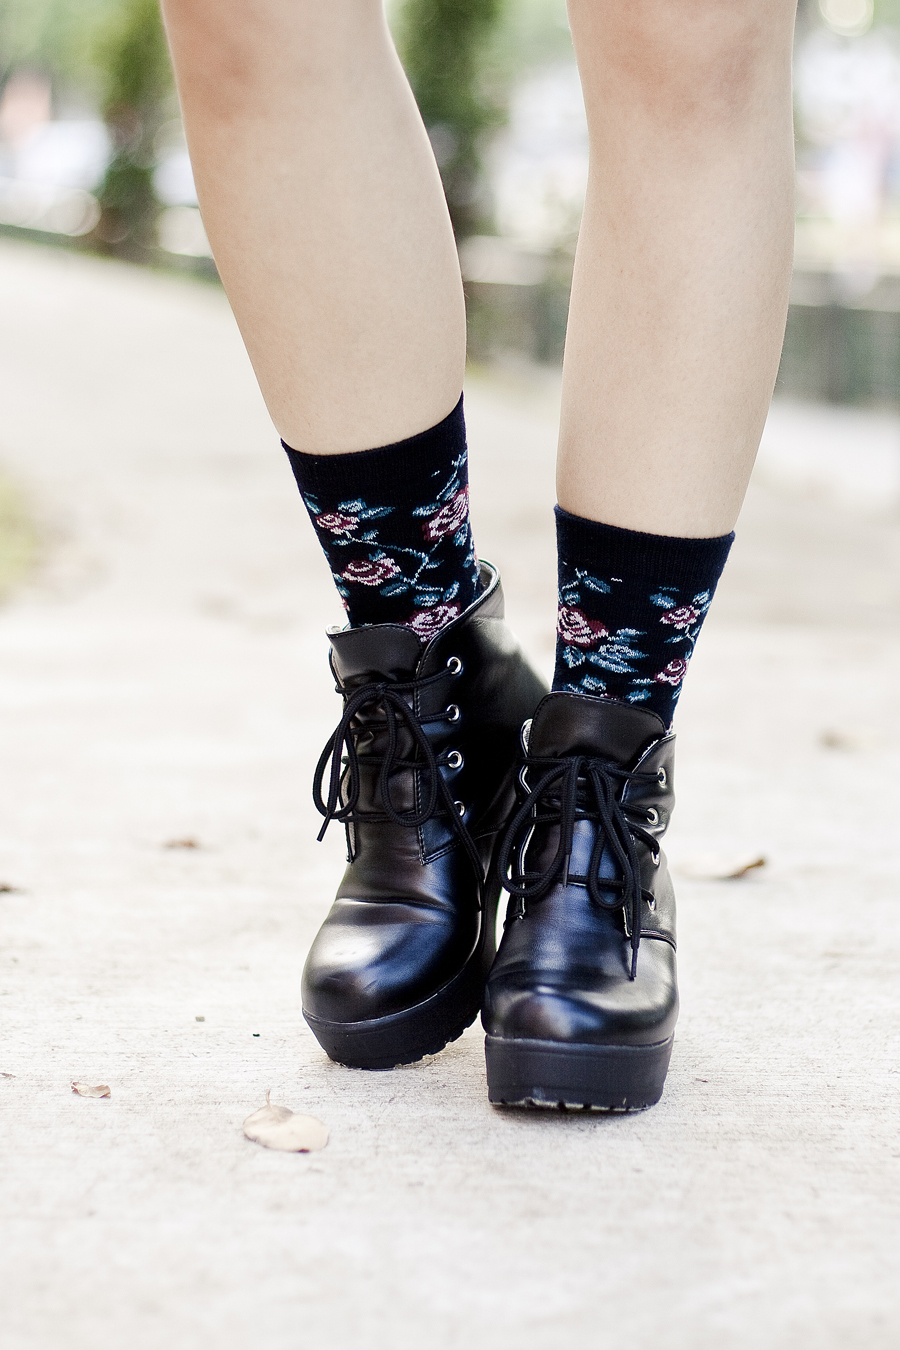 Black floral socks from Taobao, black platform shoes from Taobao.